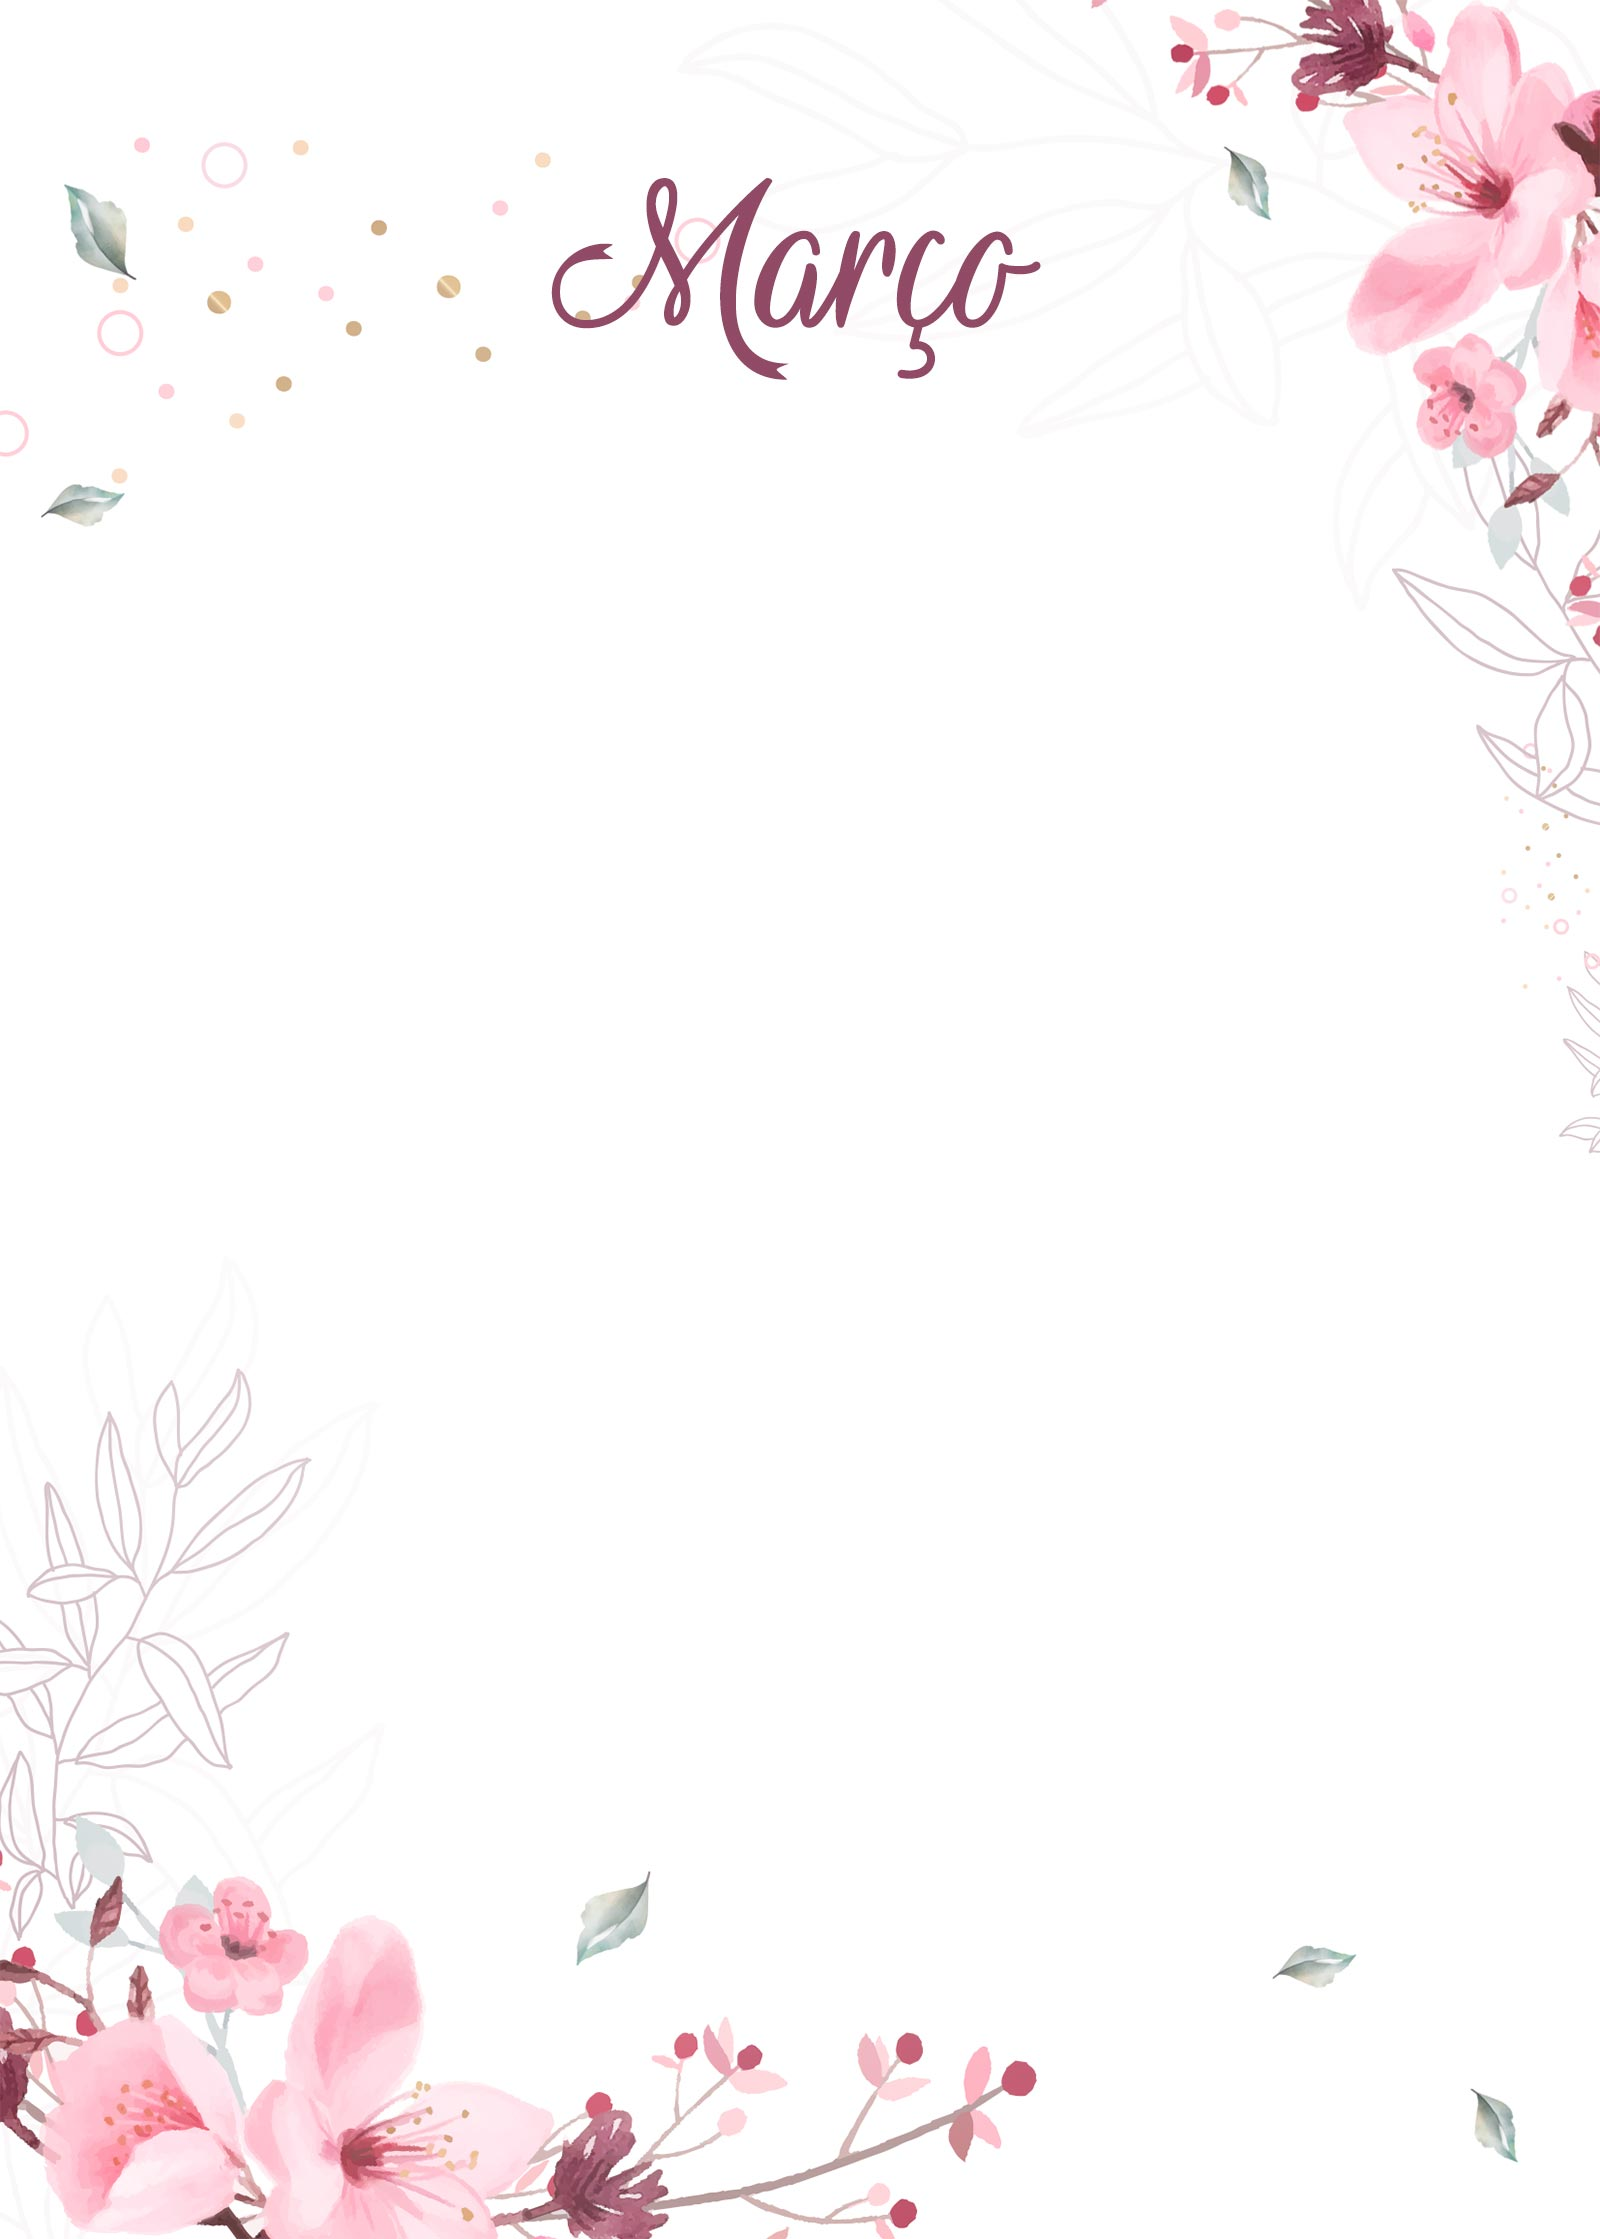 Planner Floral capa marco